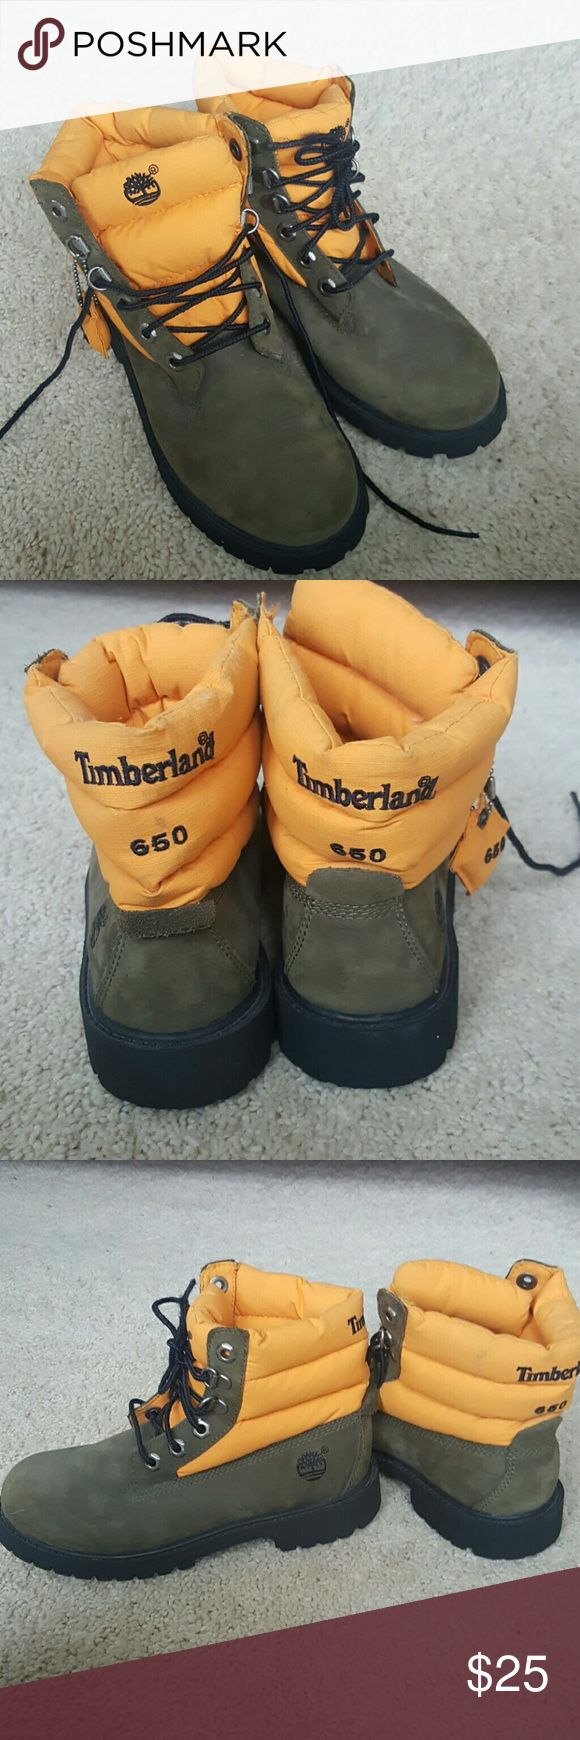 Boys timberland boots Olive green and orange bus timberland boots. Orange portion is like down jacket material. Great condition barely worn. Timberland Shoes Boots